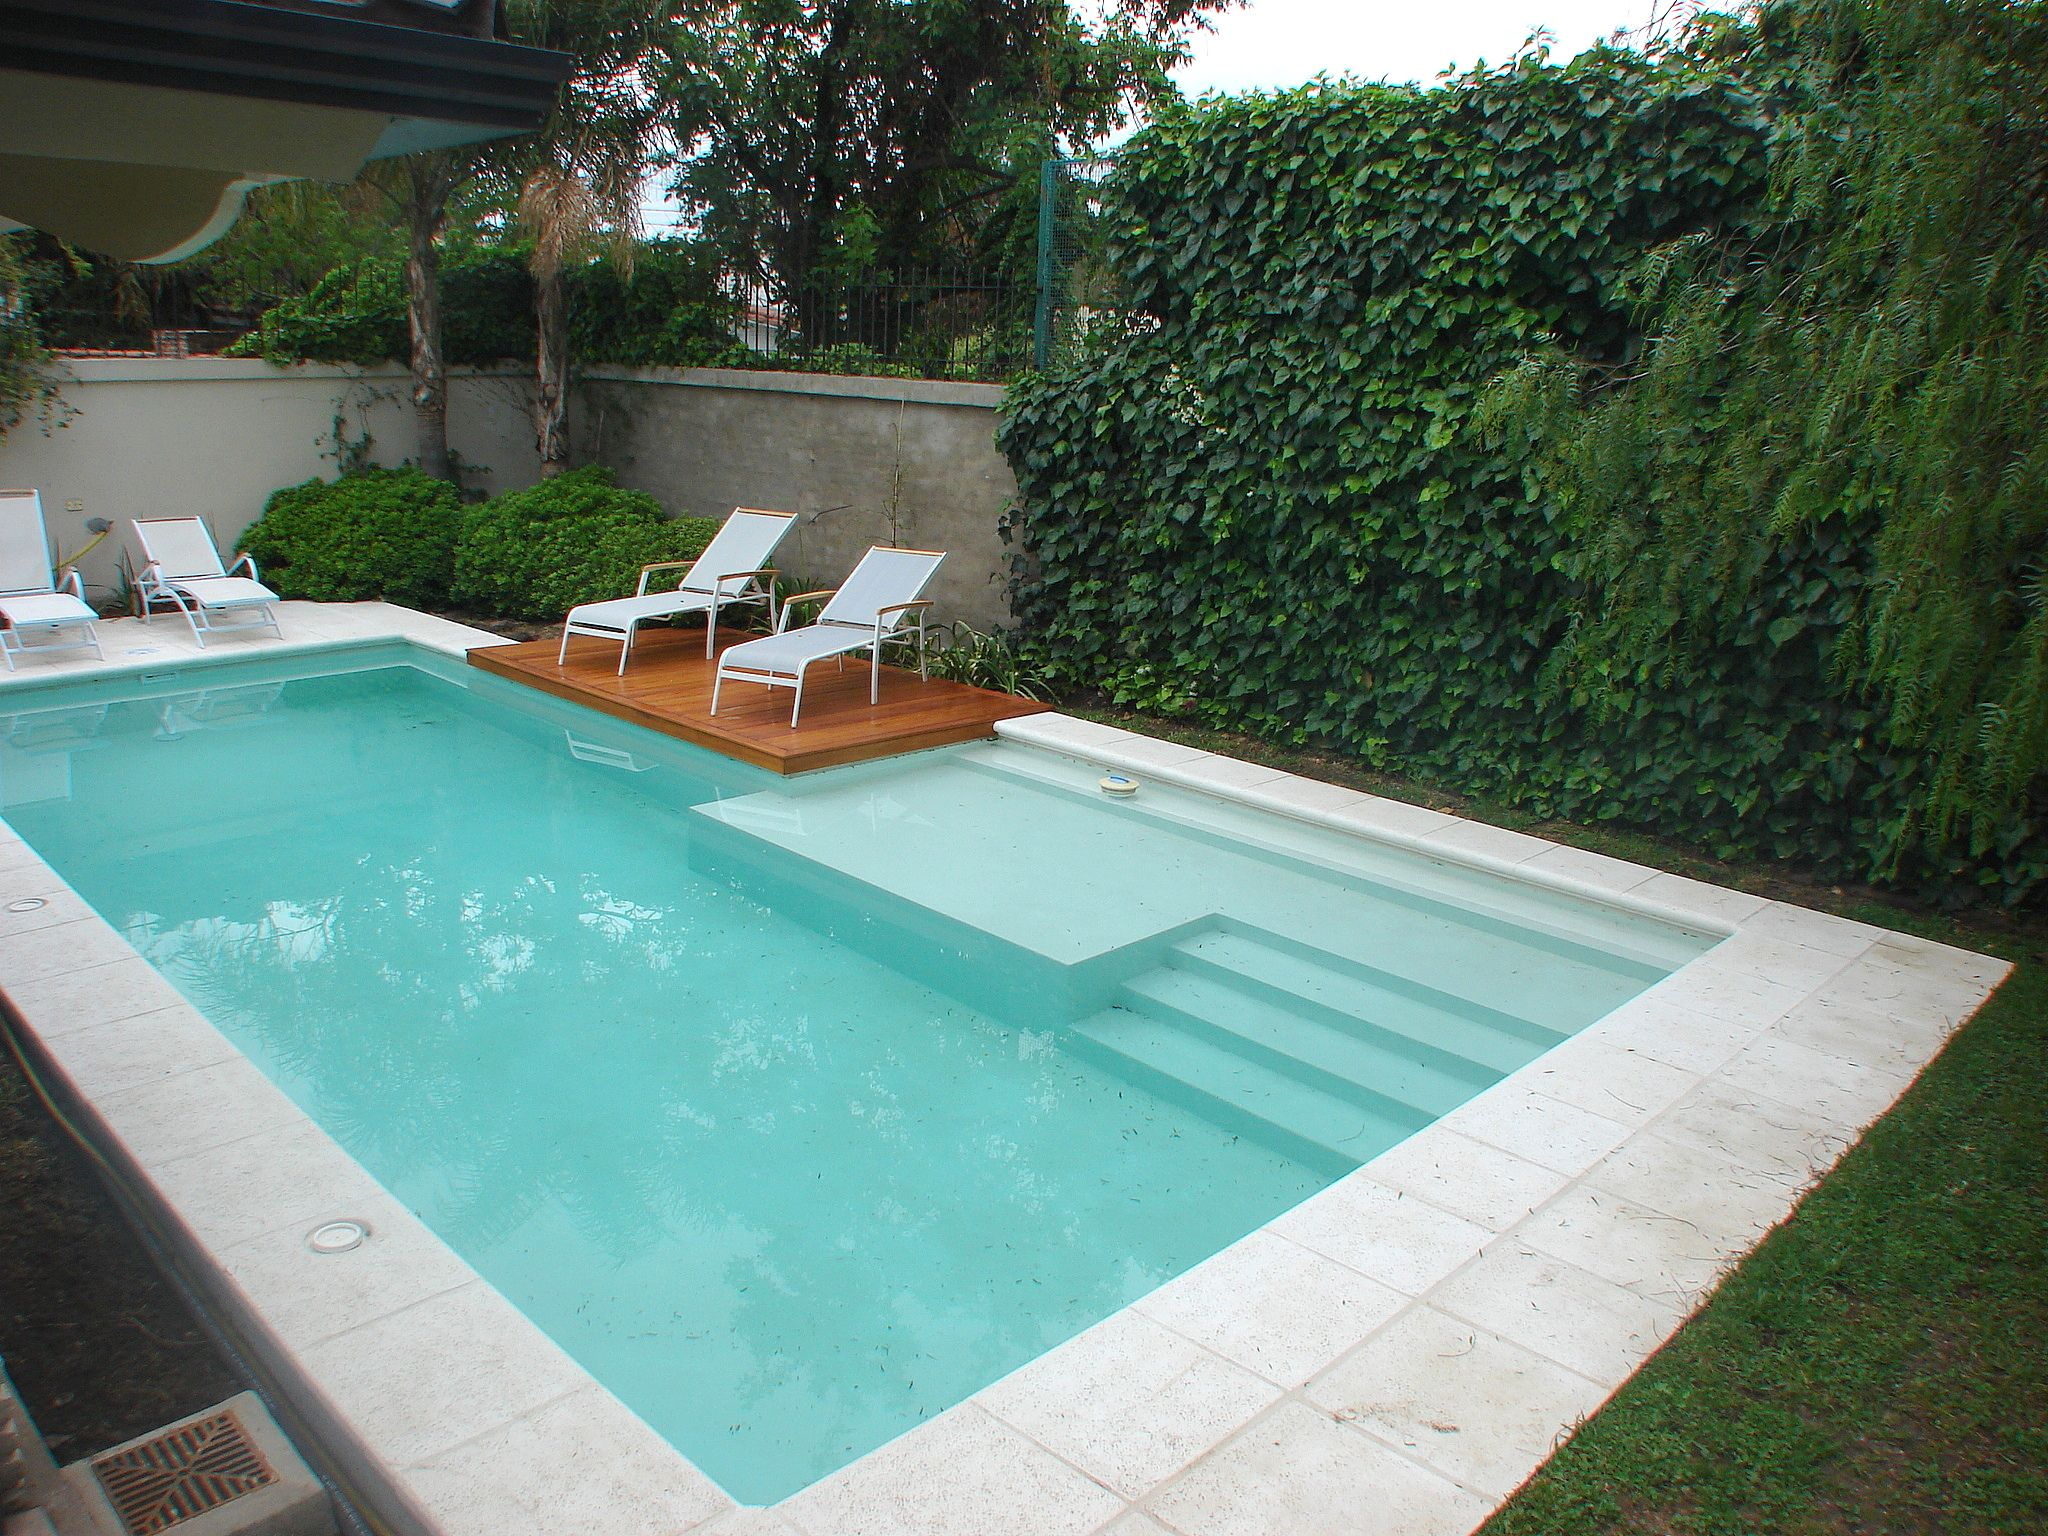 piscina familiar swimmingpool deck de madera